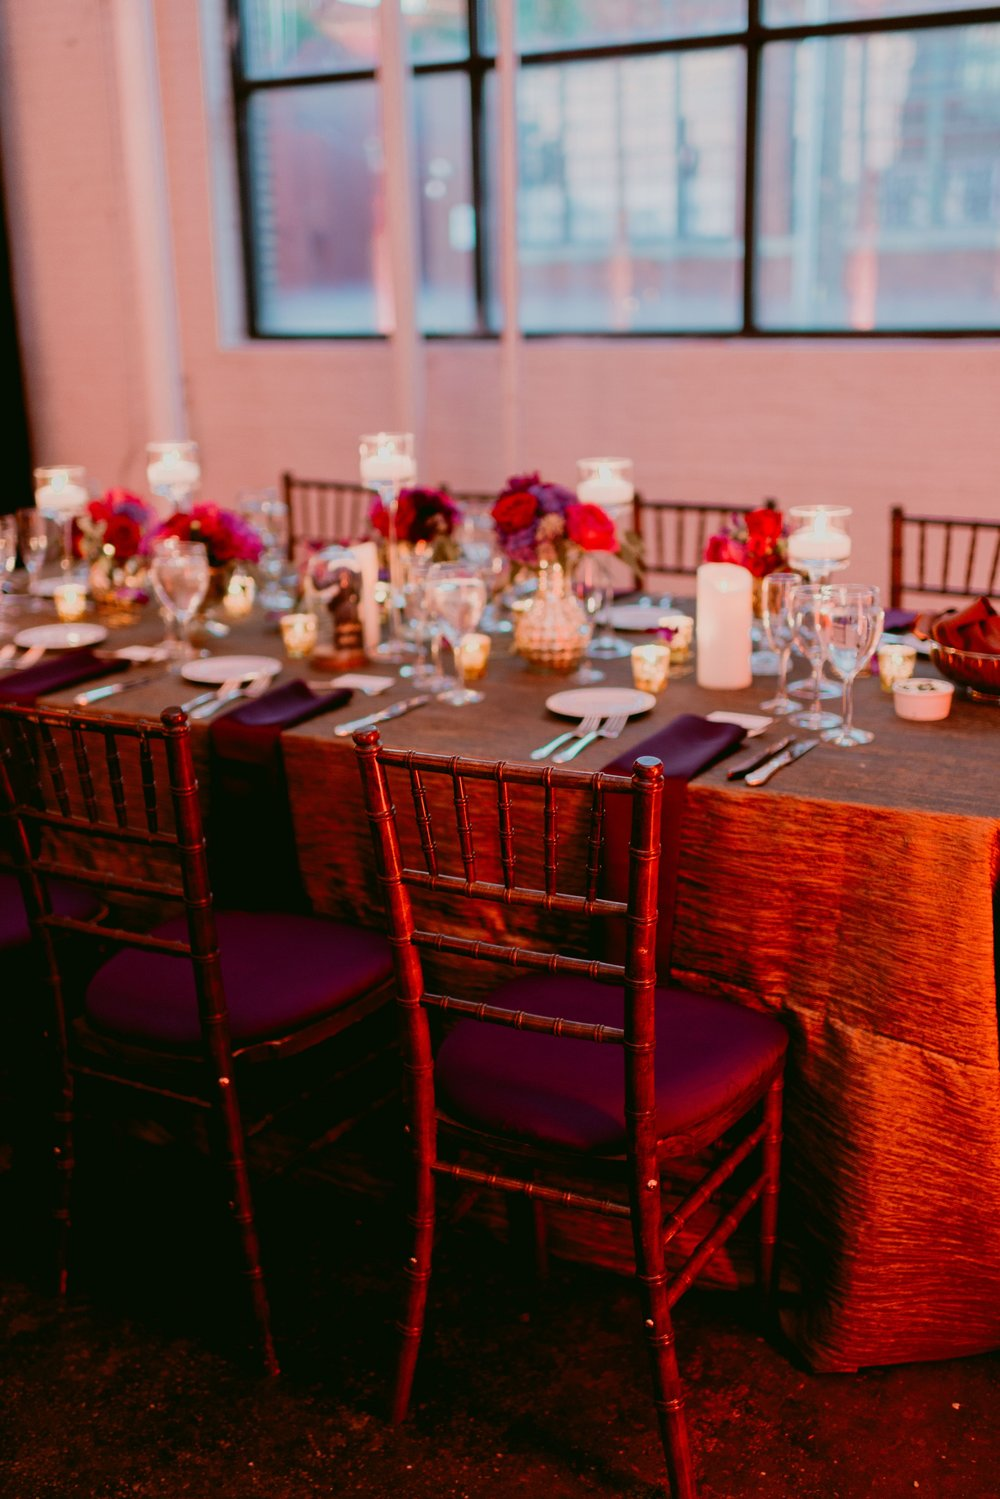 Romantic-Industrial-Warehouse-Wedding_Mallory+Justin-Photographers_0196.jpg